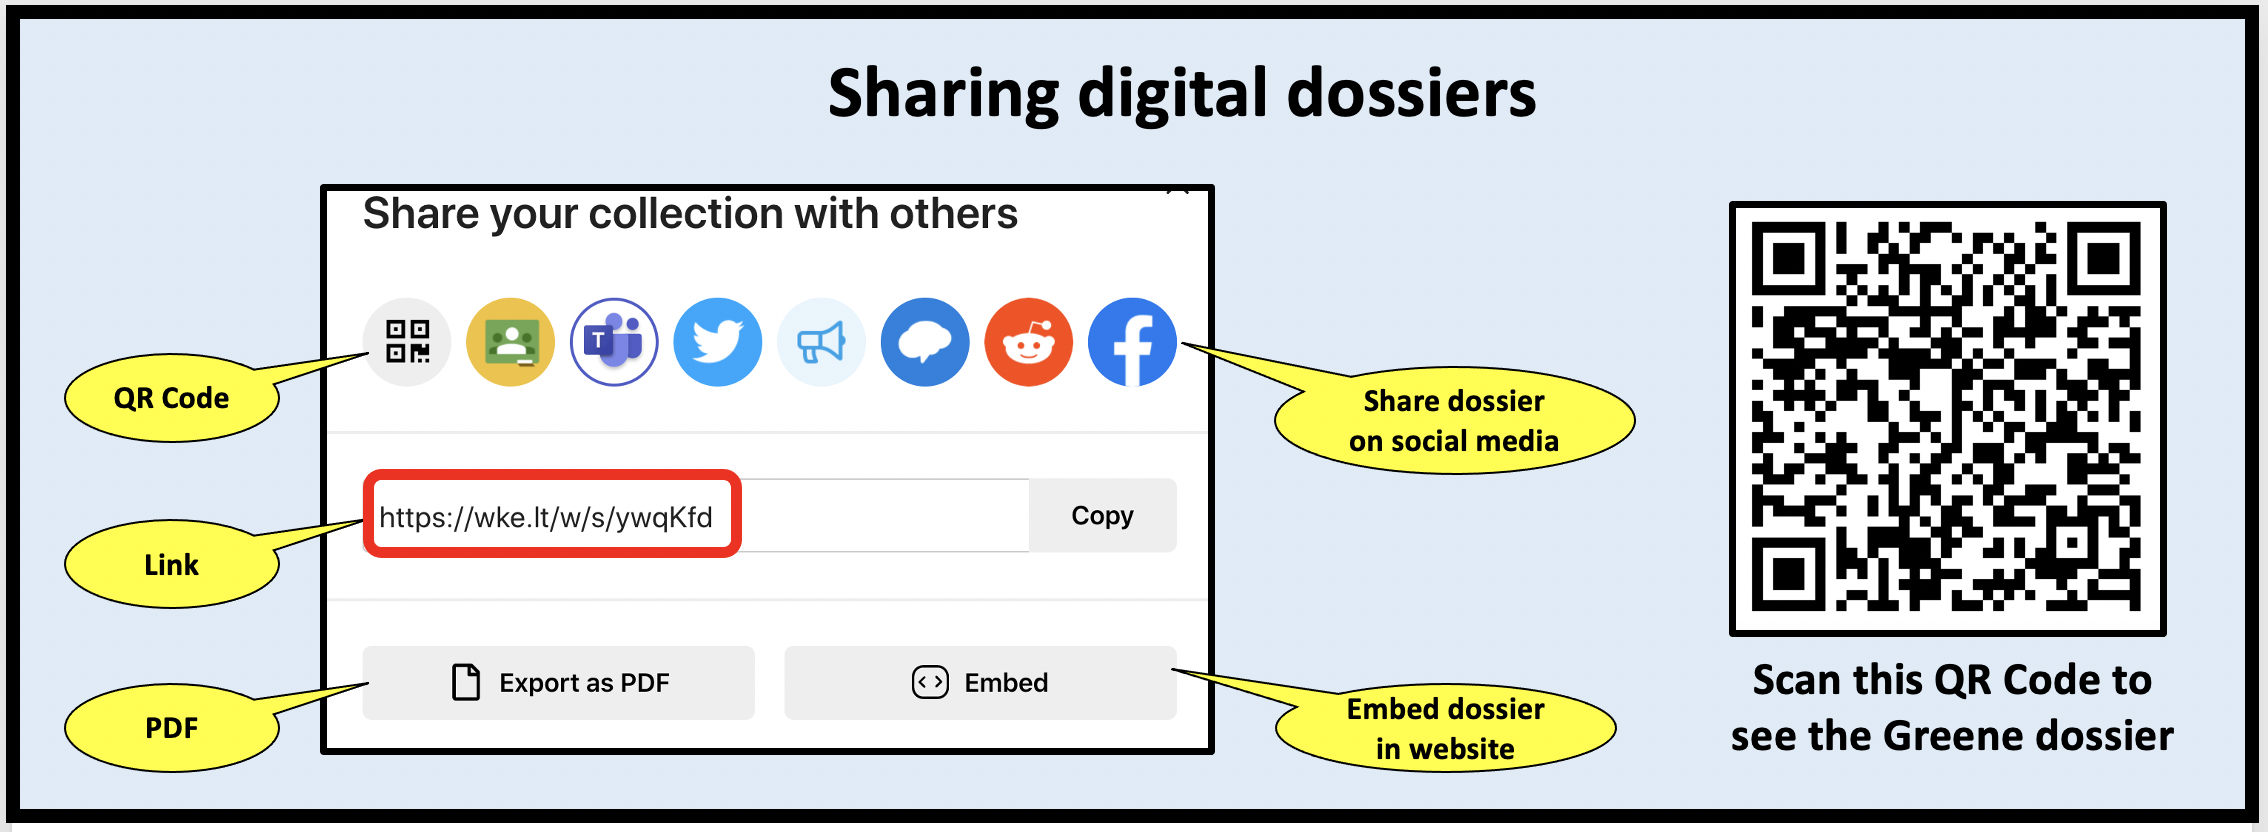 How to share a digital dossier through a link, on other websites, social media or through a QR Code.